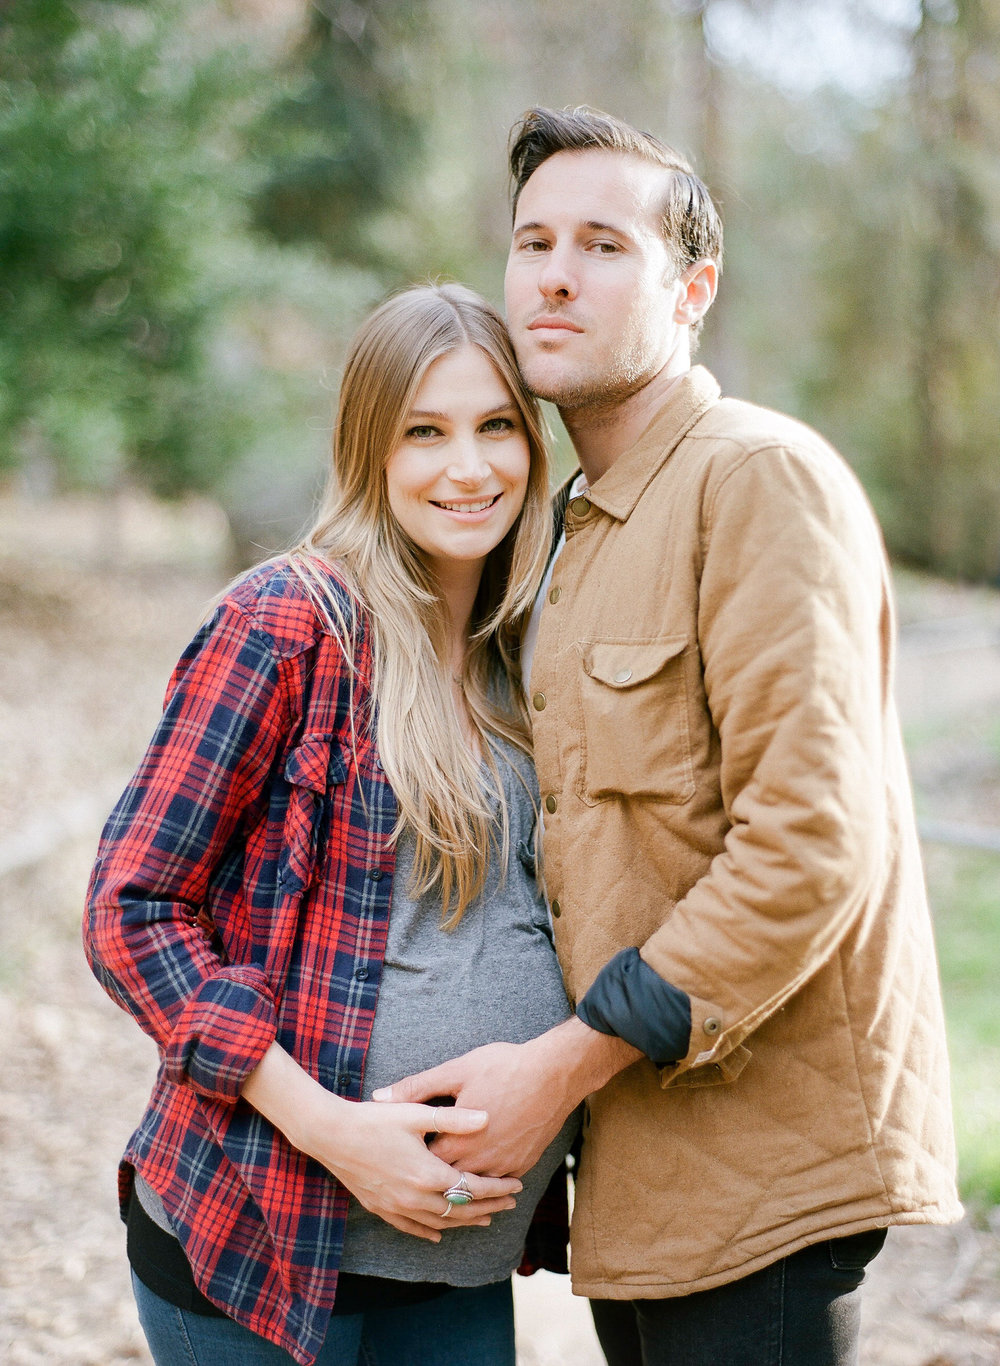 Chrissy & David Maternity Session-11.jpg